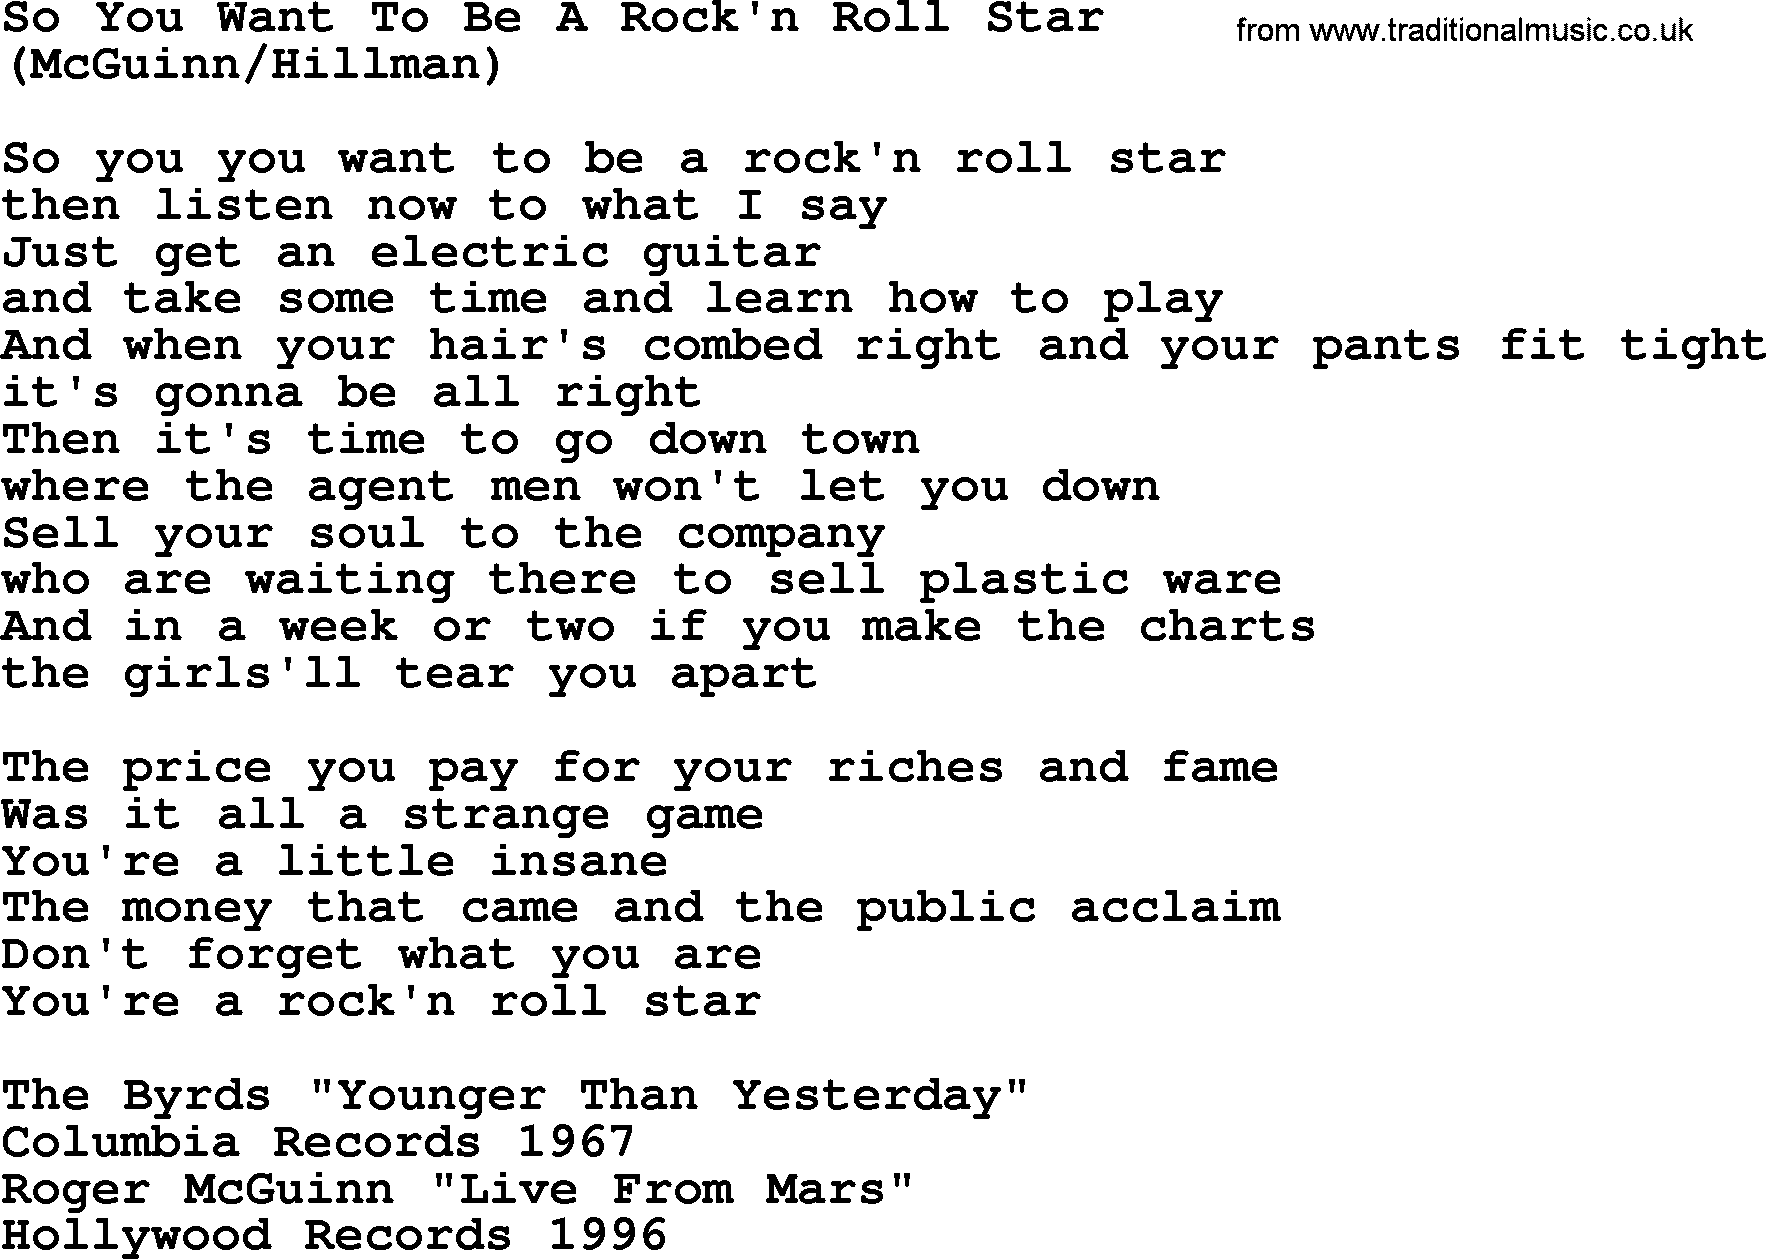 Time Song Lyrics With Chords For When The Roll Is: So You Want To Be A Rock'n Roll Star, By The Byrds